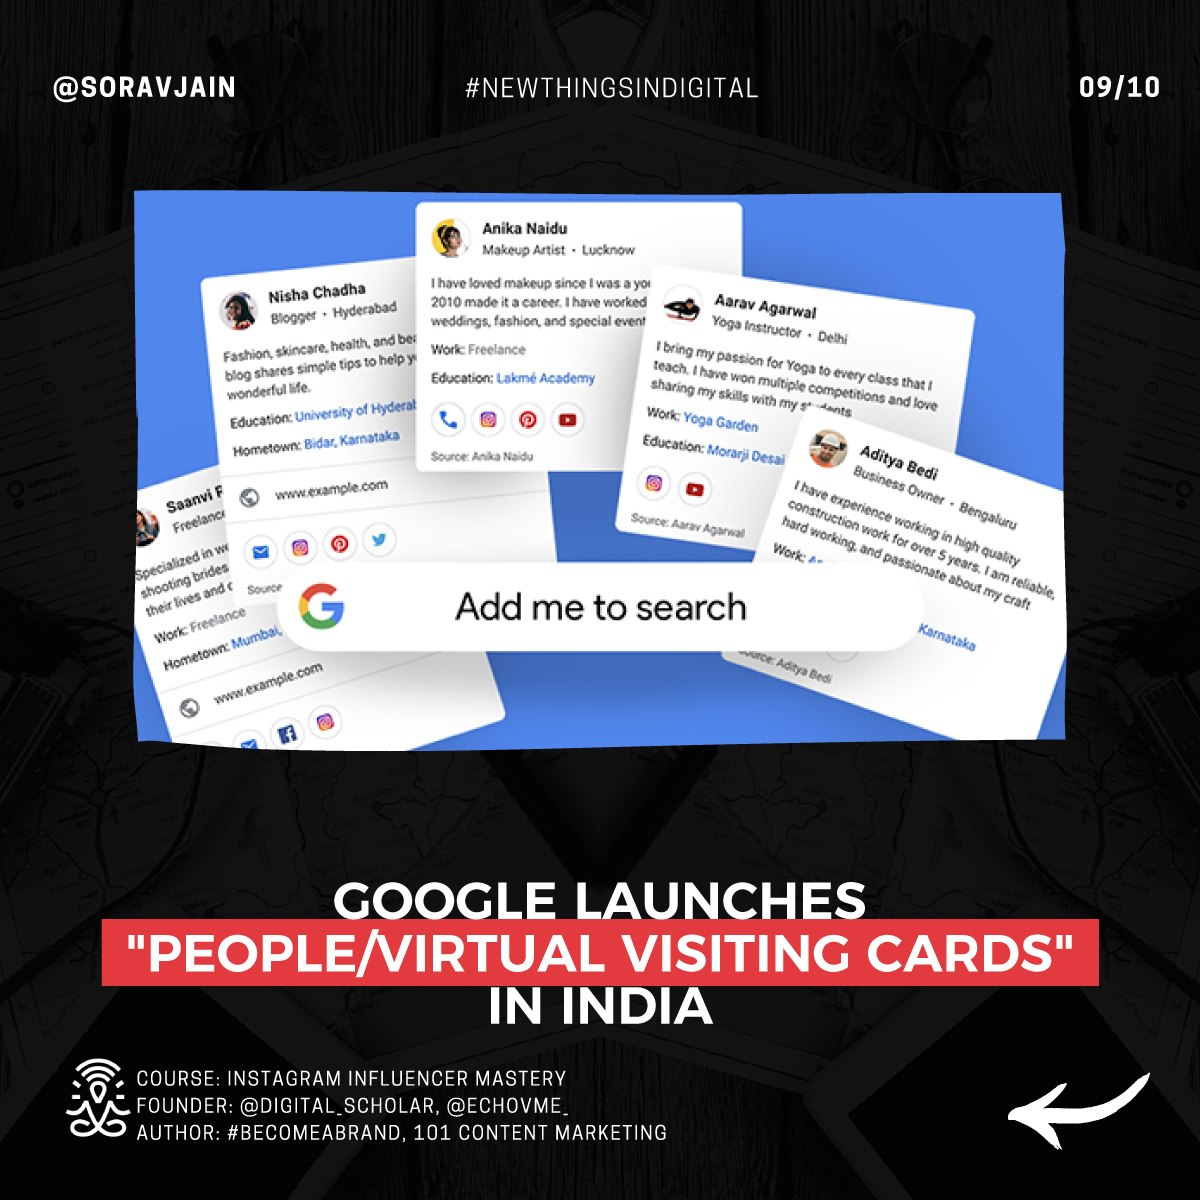 Google launches People-Virtual Visiting Cards in India